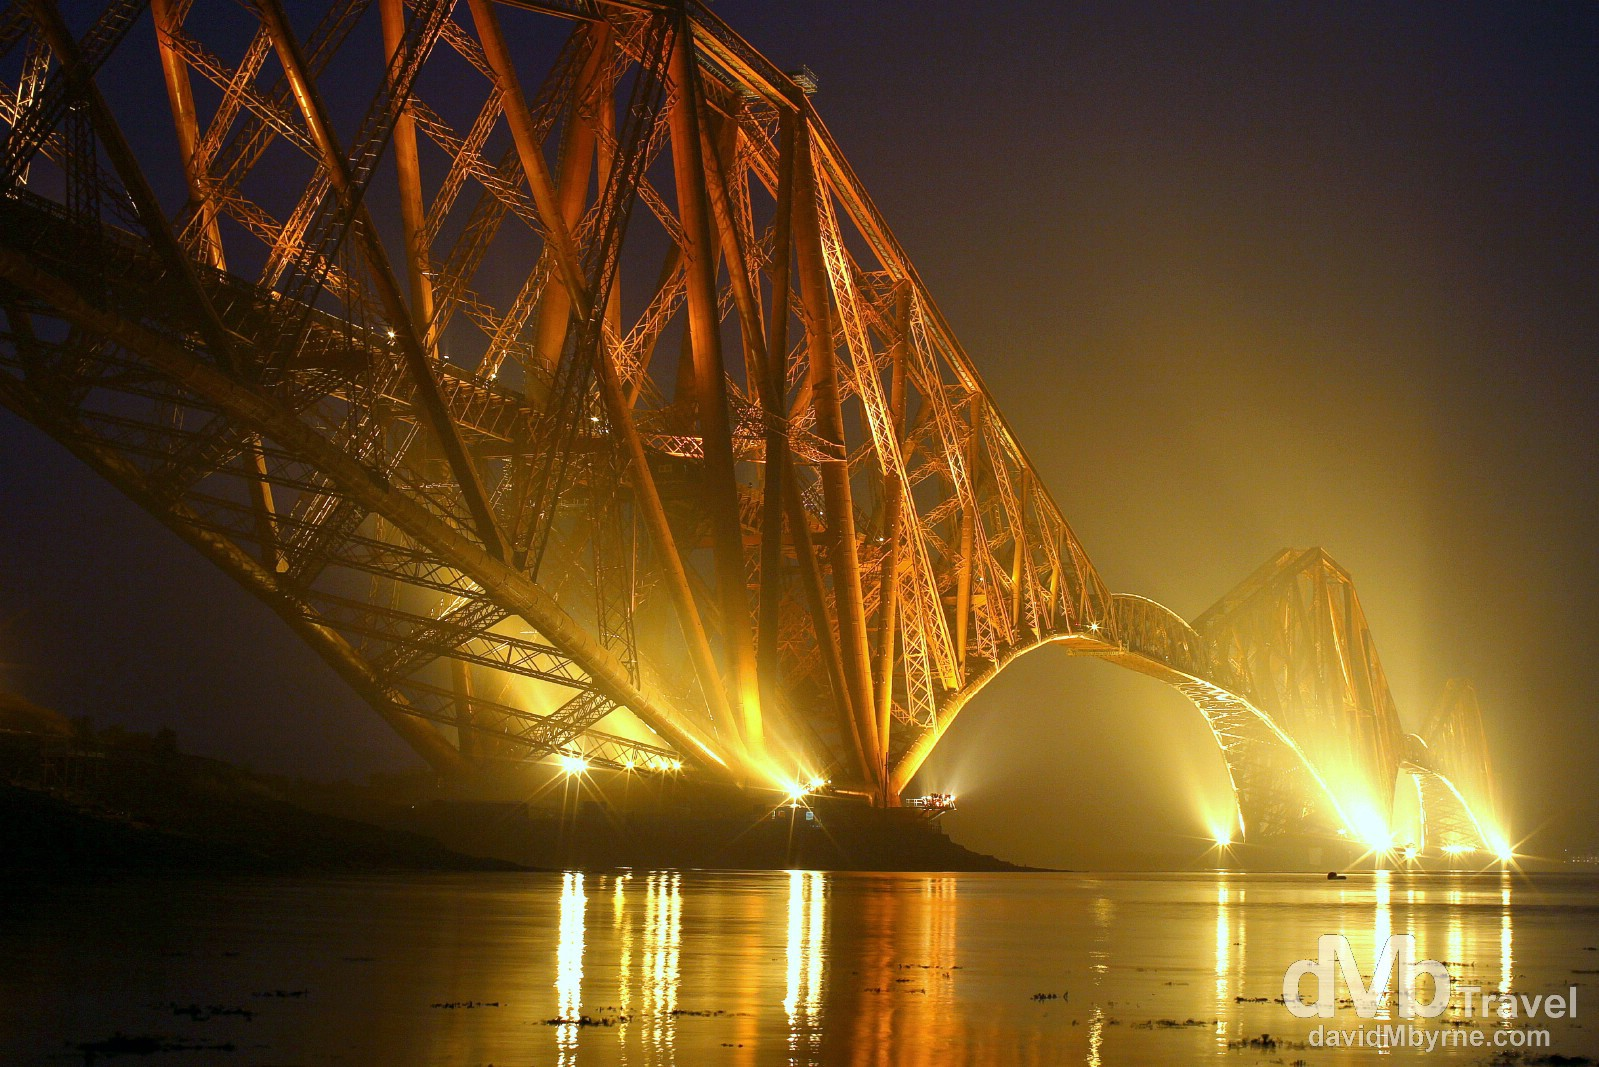 Forth Rail Bridge crossing the Firth of Forth, Scotland. September 12, 2014.